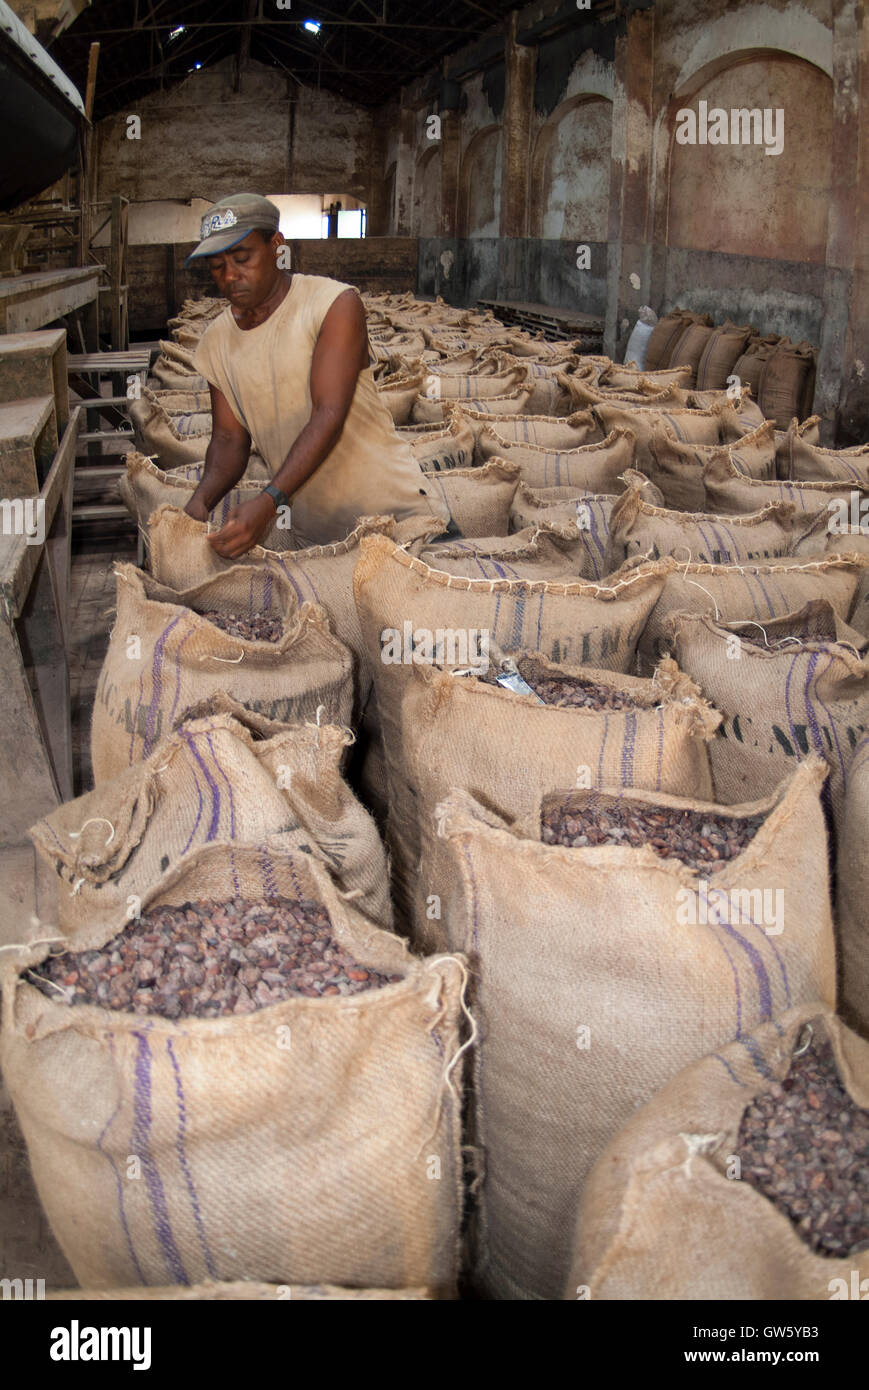 Cocoa Beans Packed In Sacks After Roasting Ready To Be